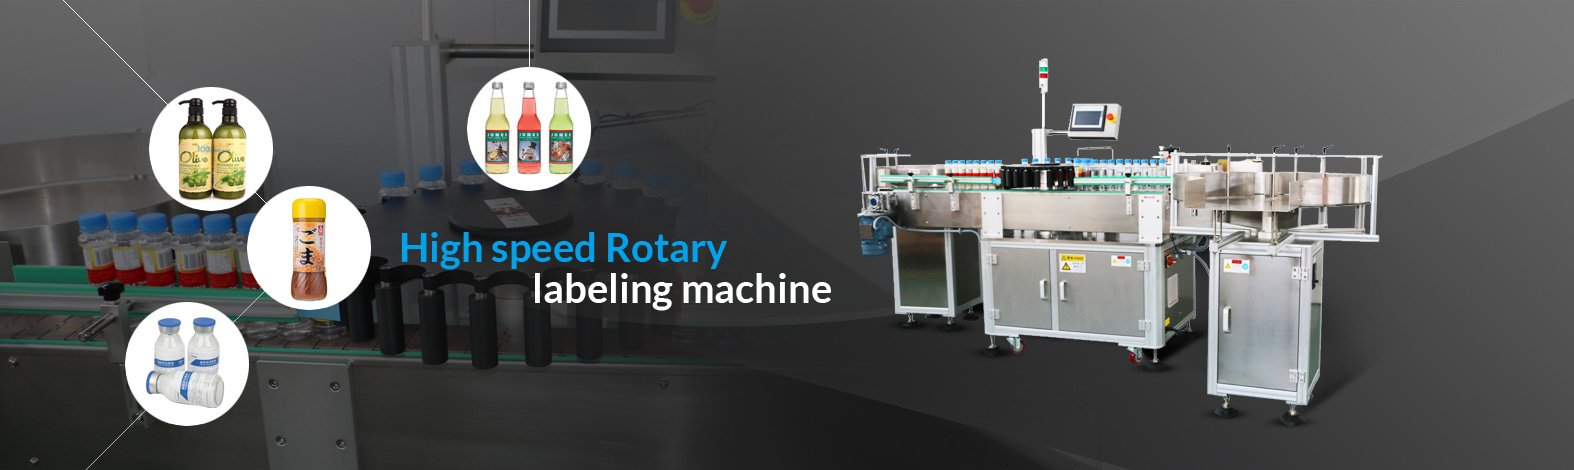 High speed rotary labeling machine